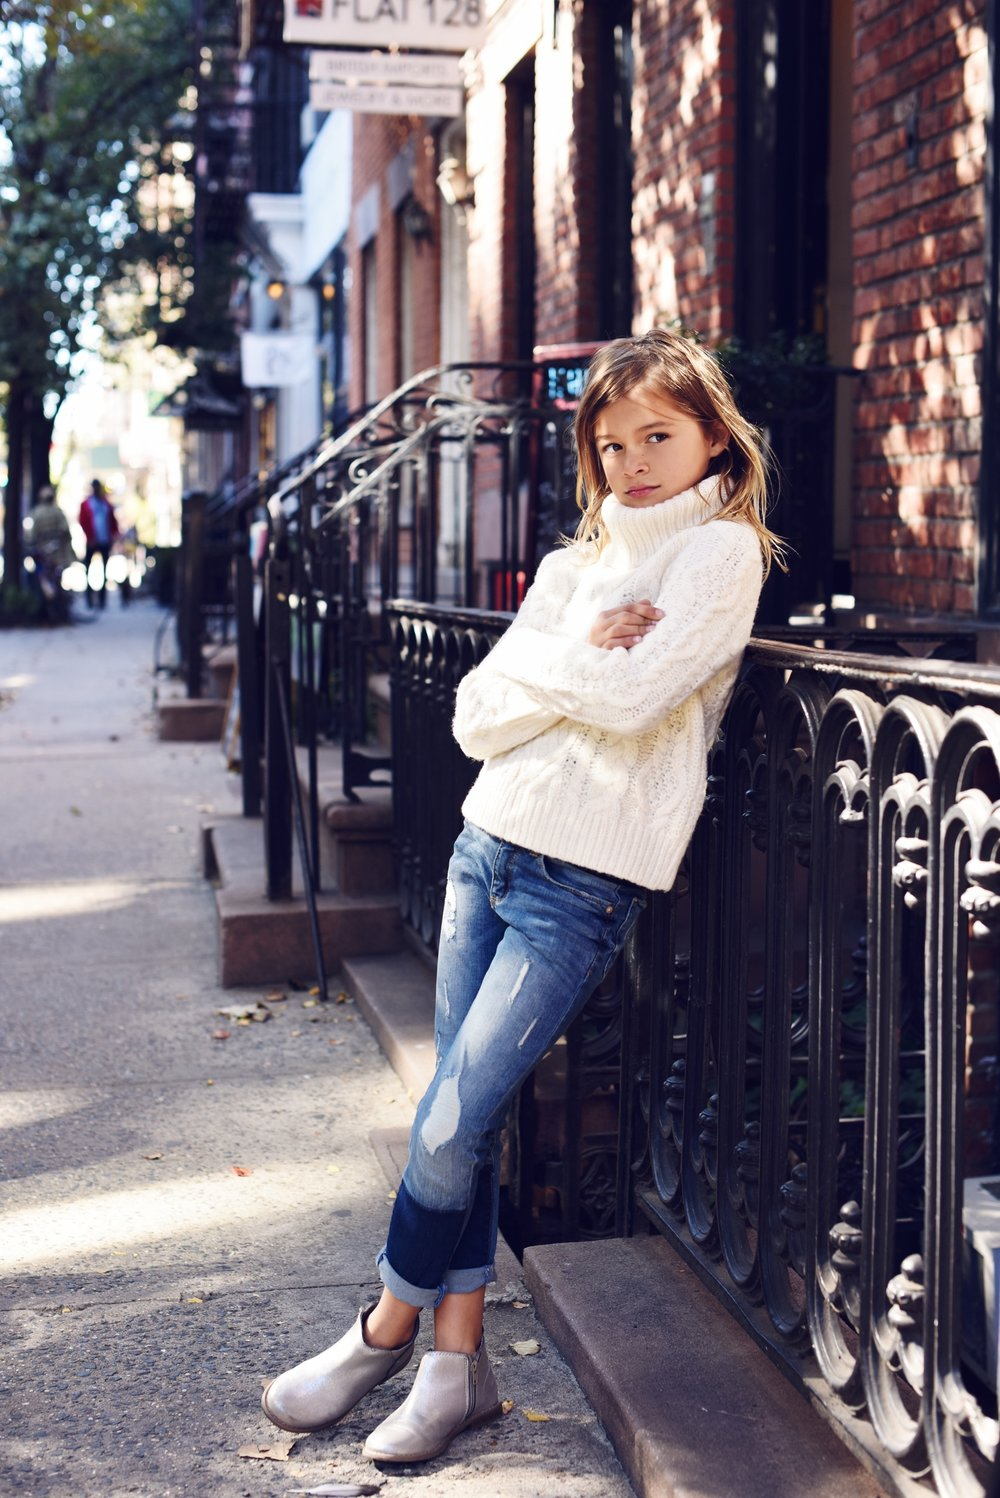 Enfant+Street+Style+by+Gina+Kim+Photography-21.jpeg